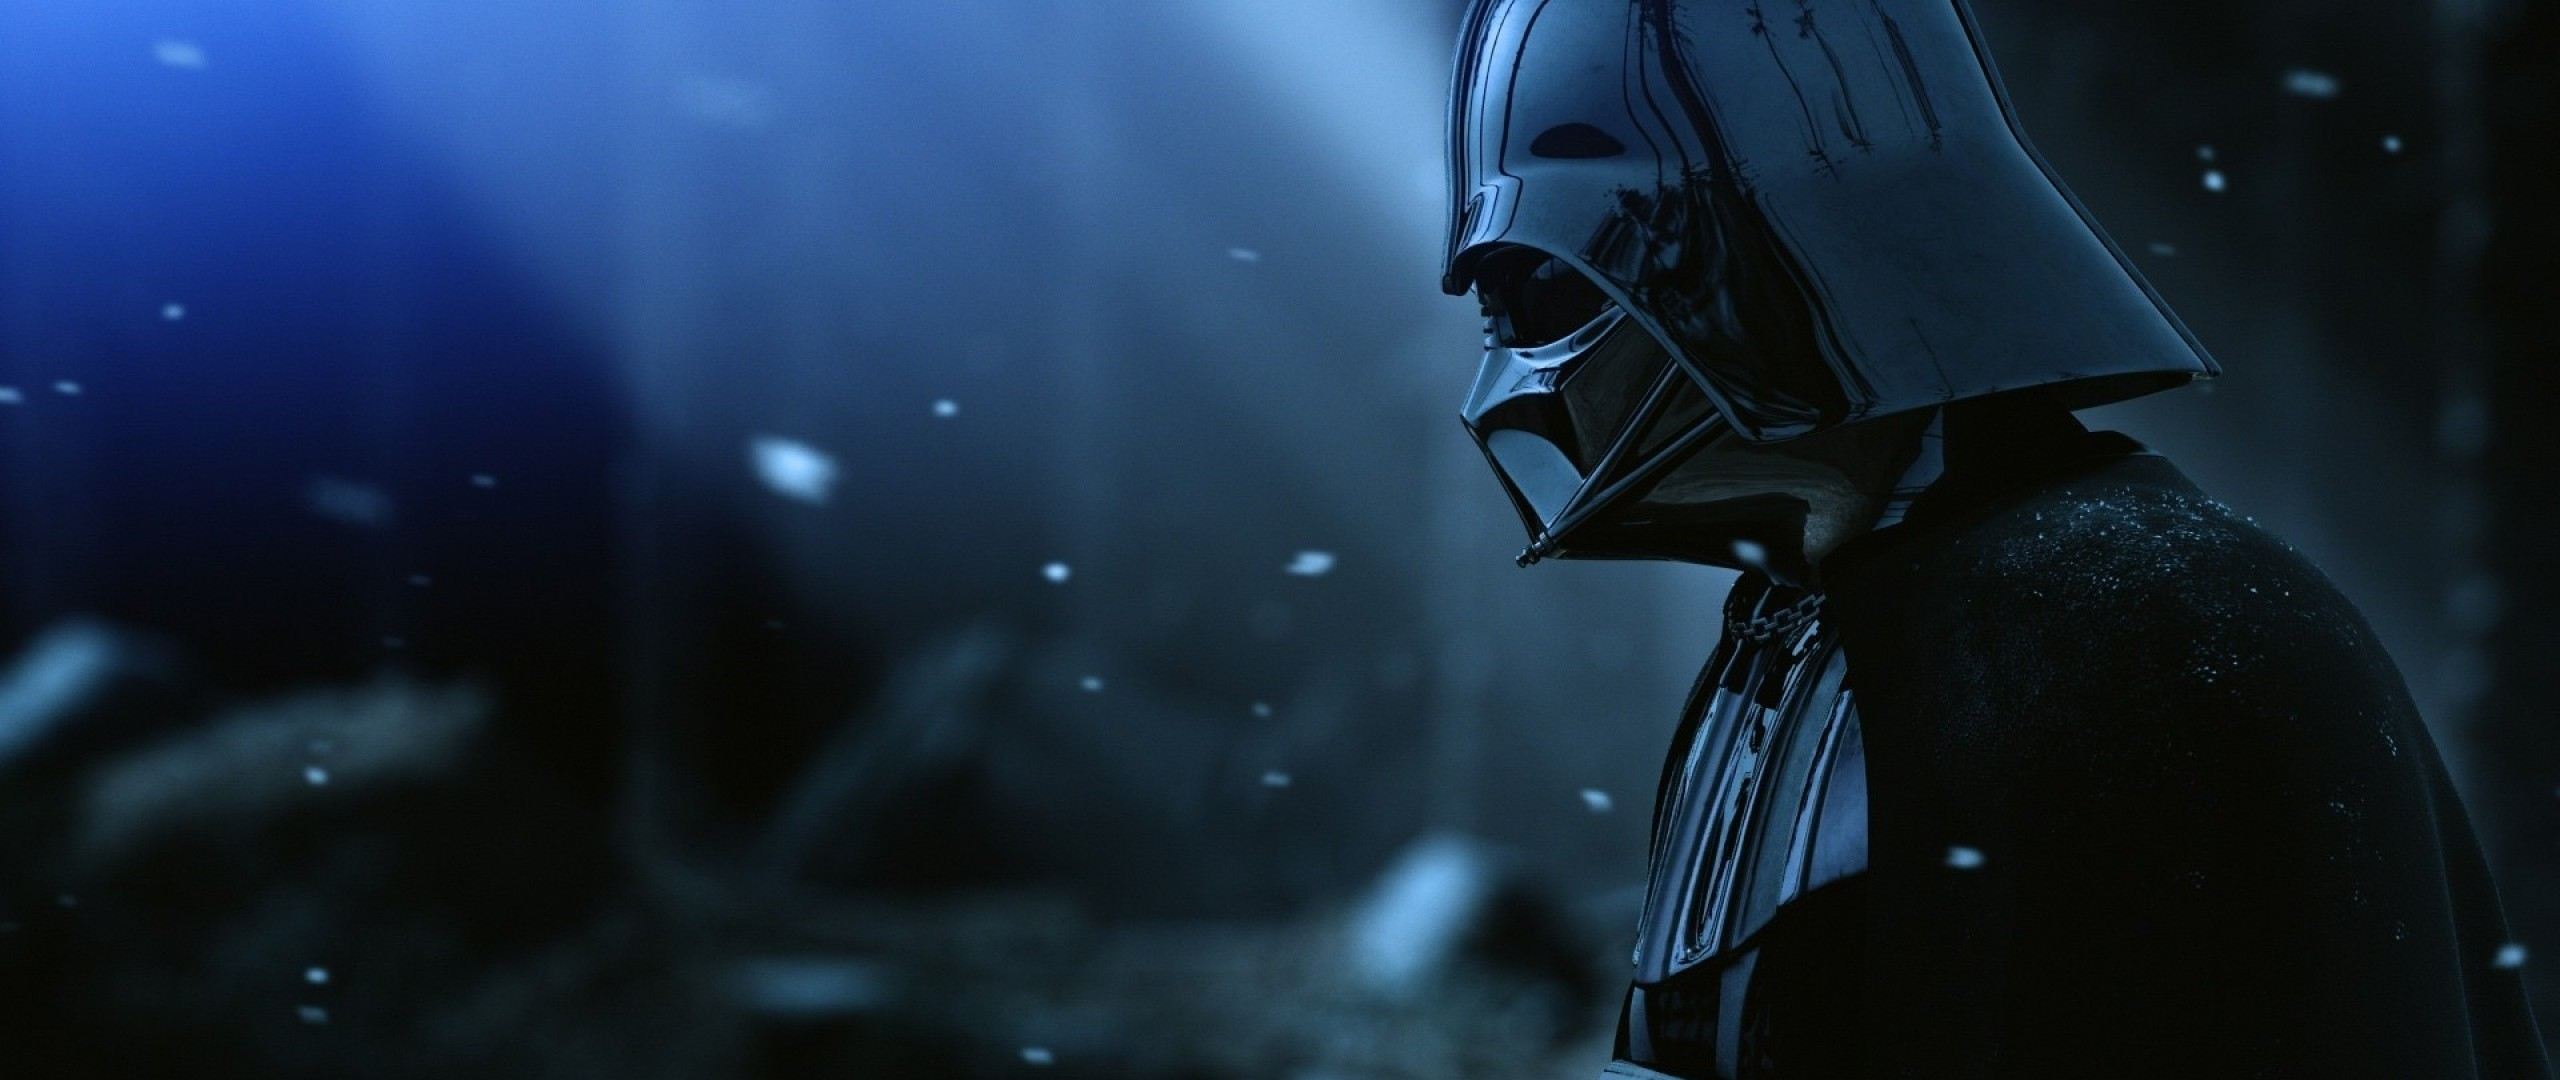 2560x1080  Wallpaper darth vader, armor, star wars, film, hat, snow